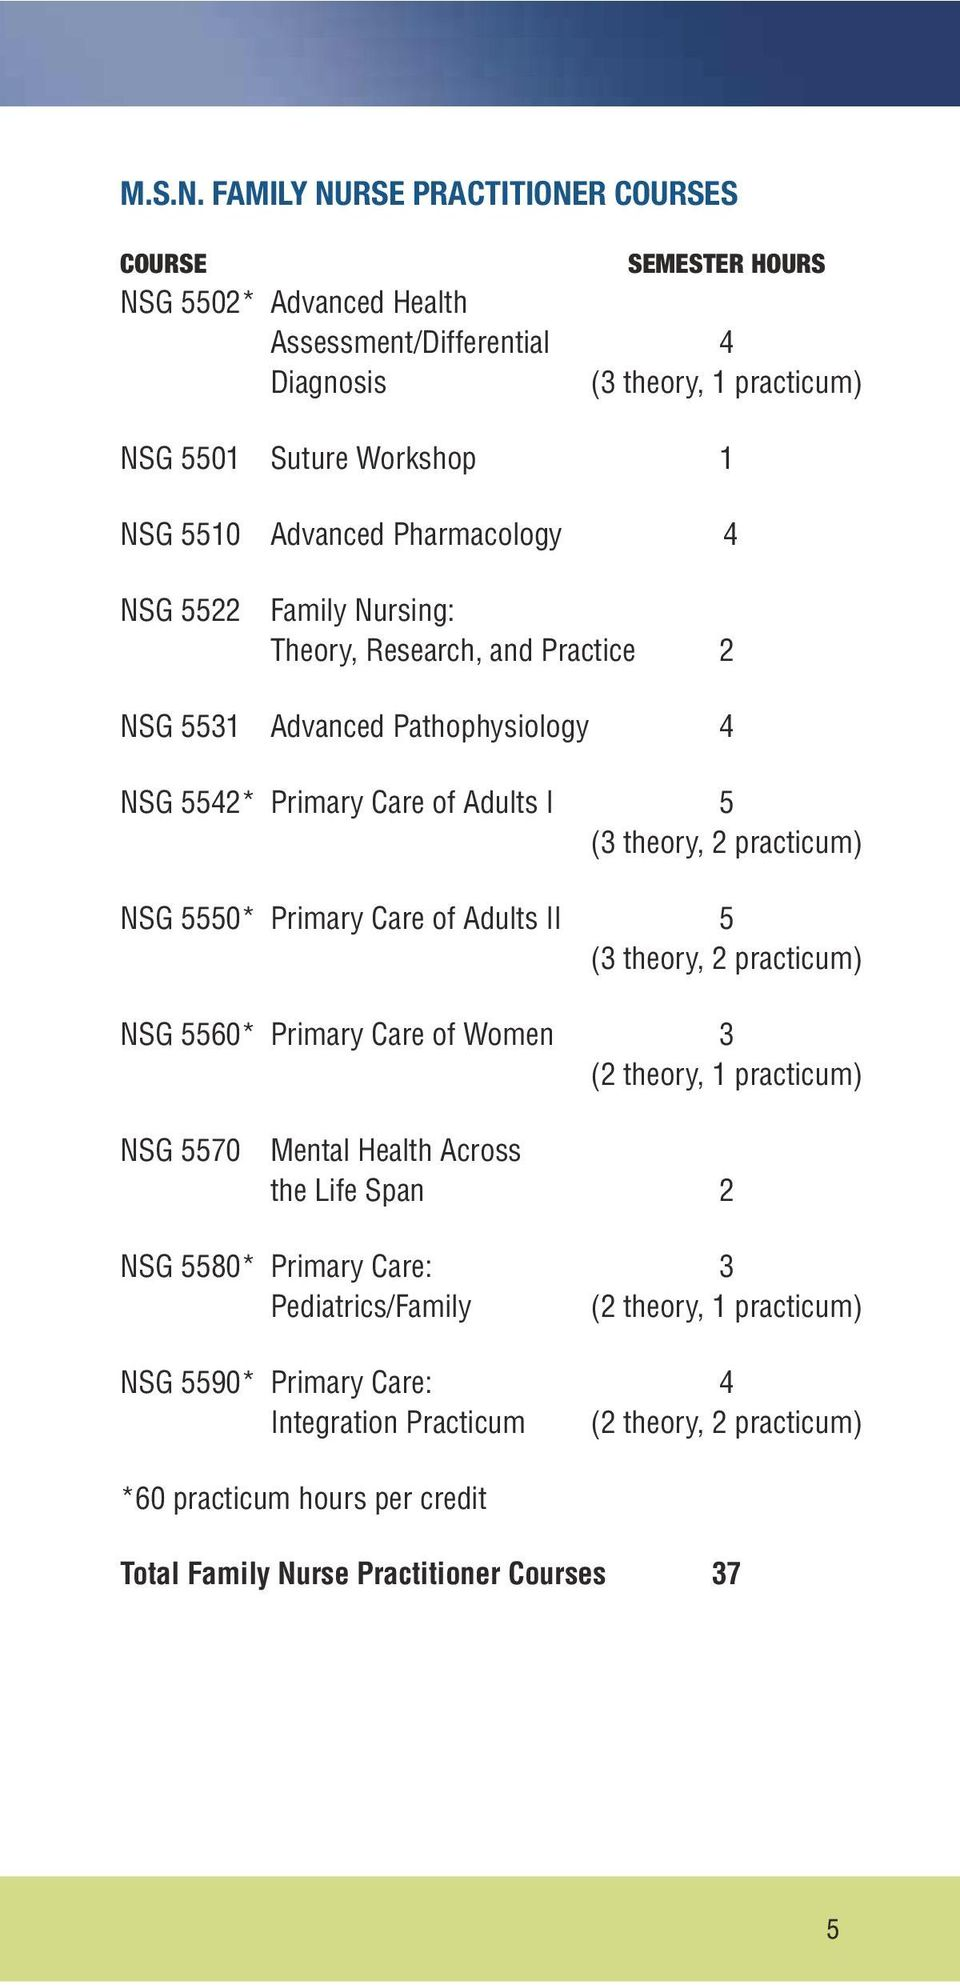 Pharmacology 4 NSG 5522 Family Nursing: Theory, Research, and Practice 2 NSG 5531 Advanced Pathophysiology 4 NSG 5542* Primary Care of Adults I 5 (3 theory, 2 practicum) NSG 5550*